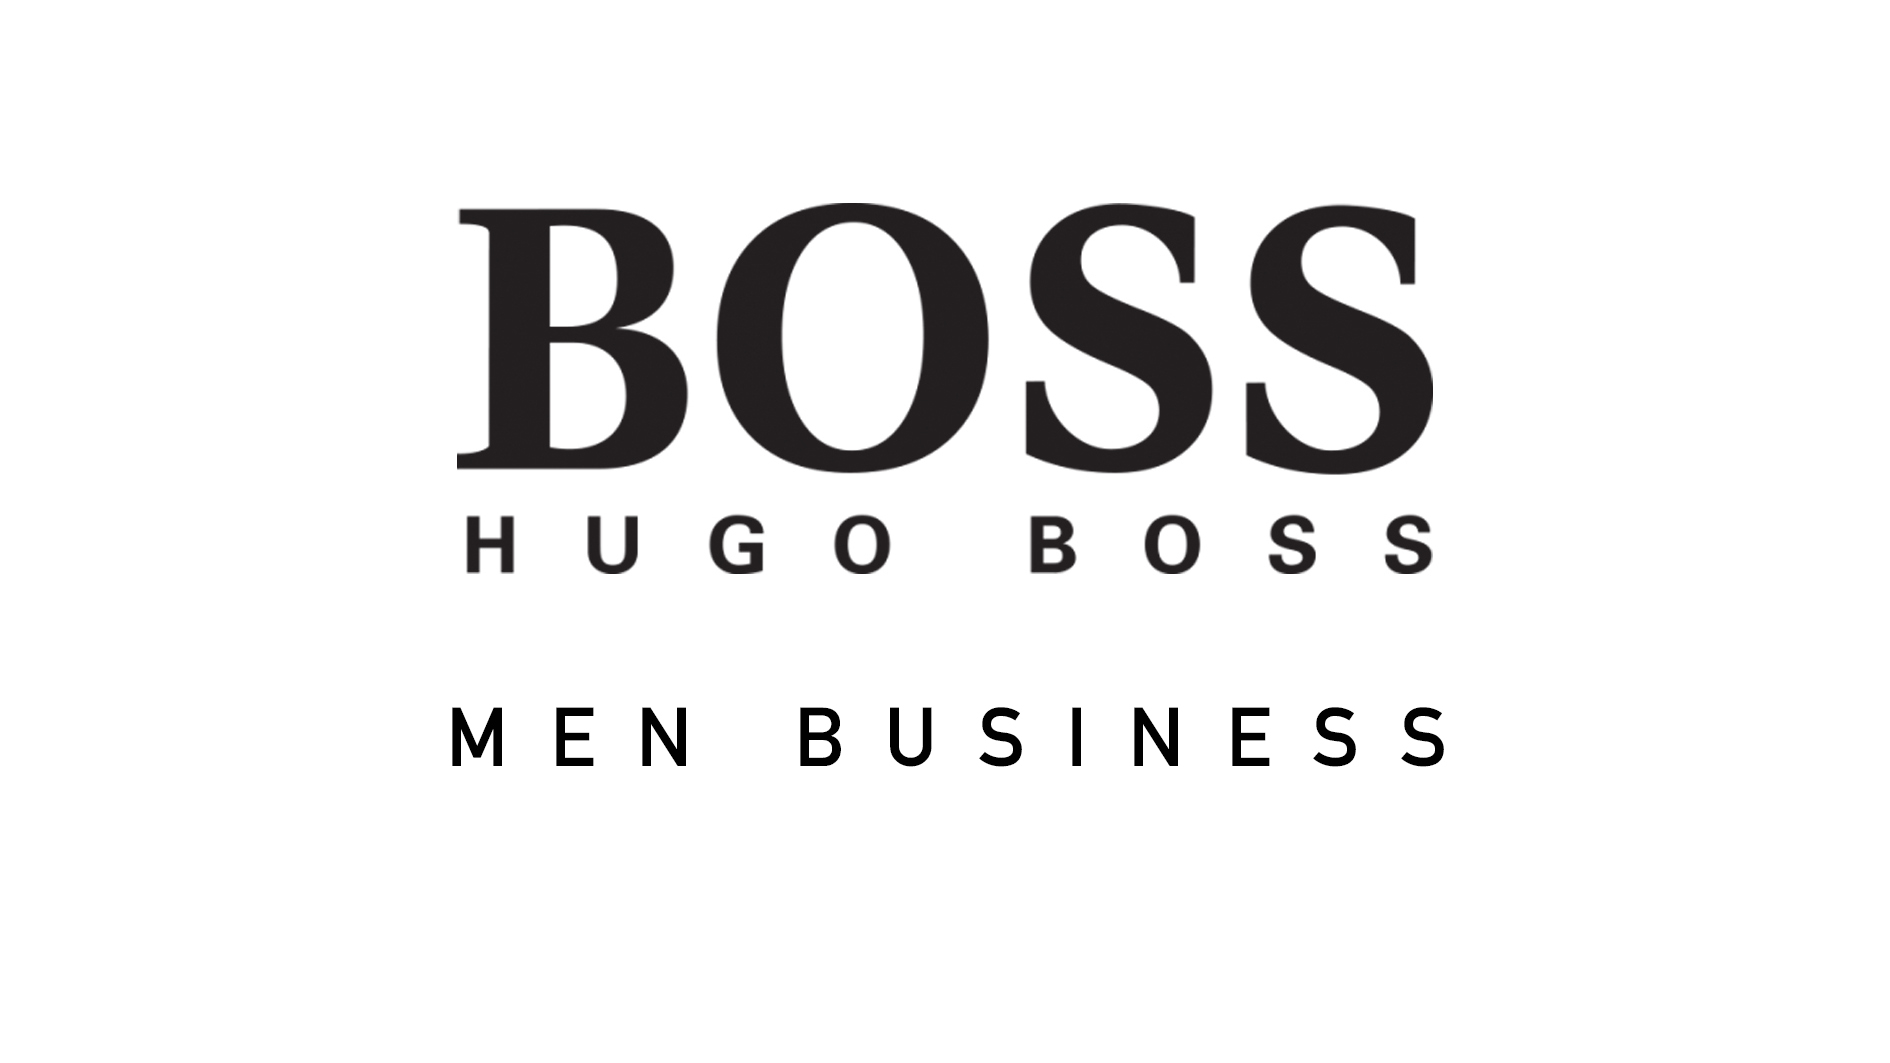 hugo-boss men business.jpg